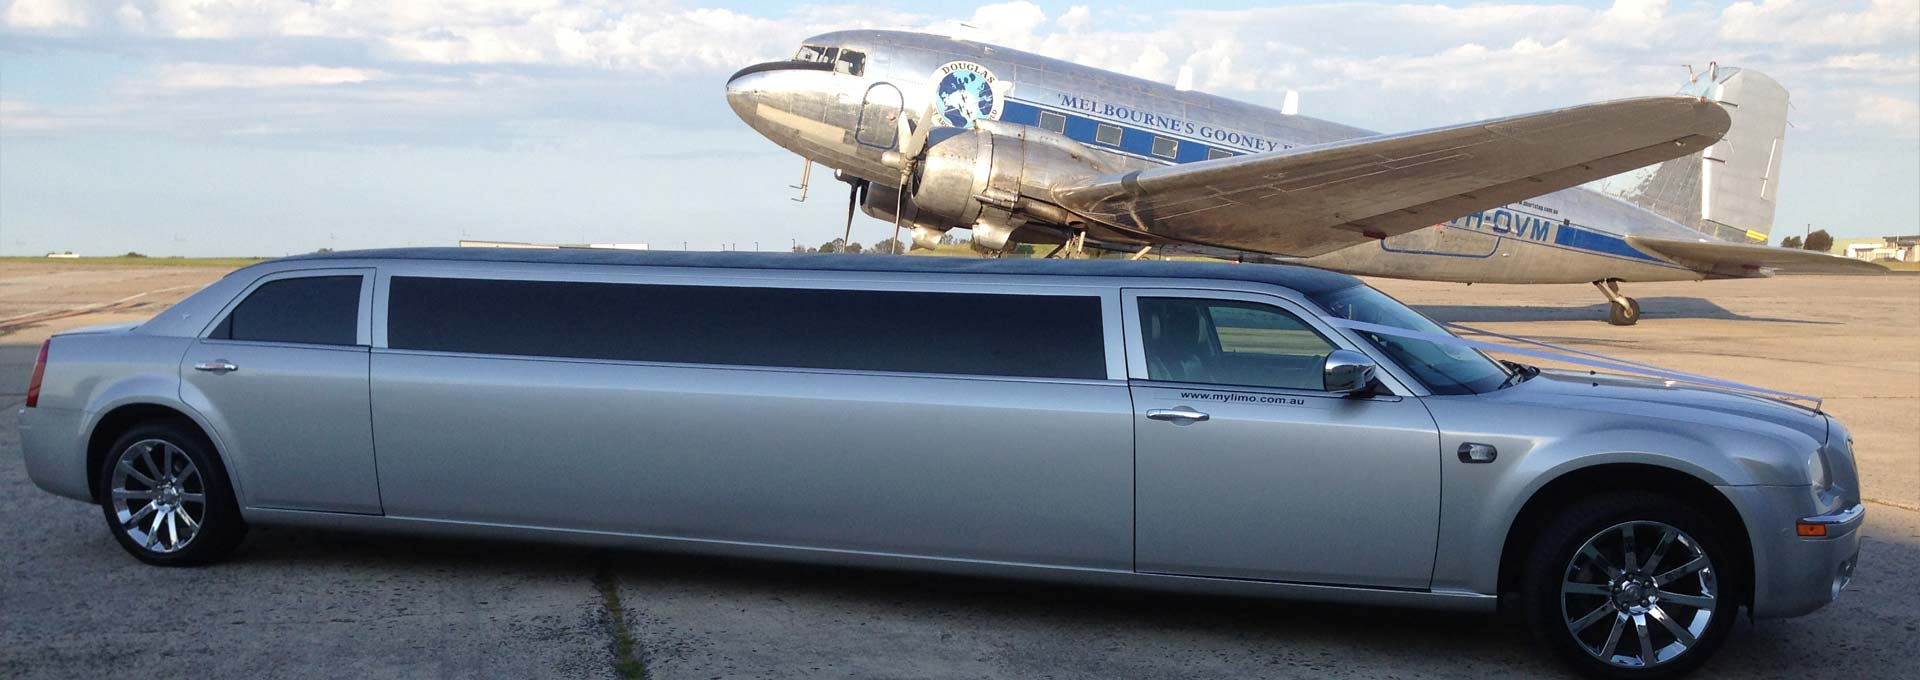 slide-airport-transfer-limo-hire